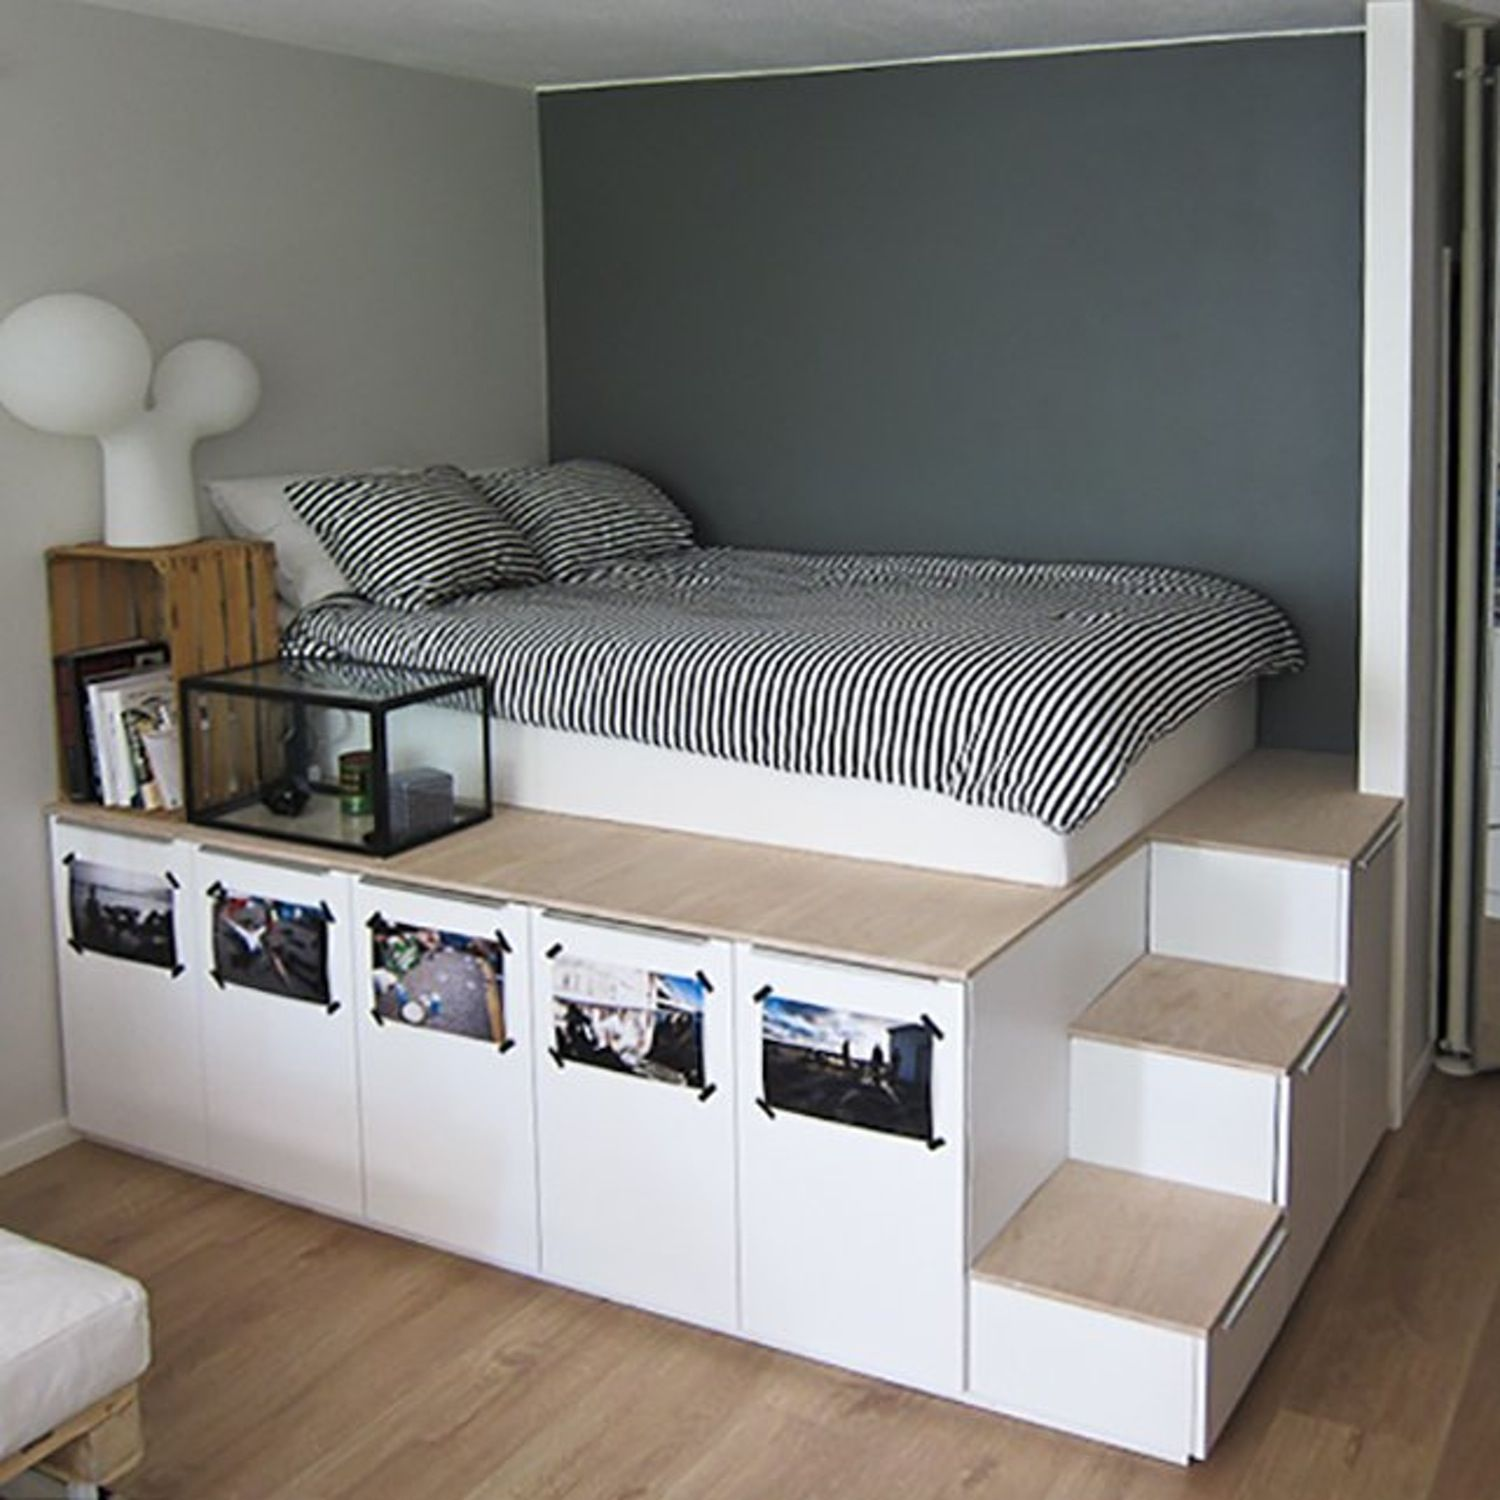 Underbed Storage Solutions For Small Spaces With Images Small